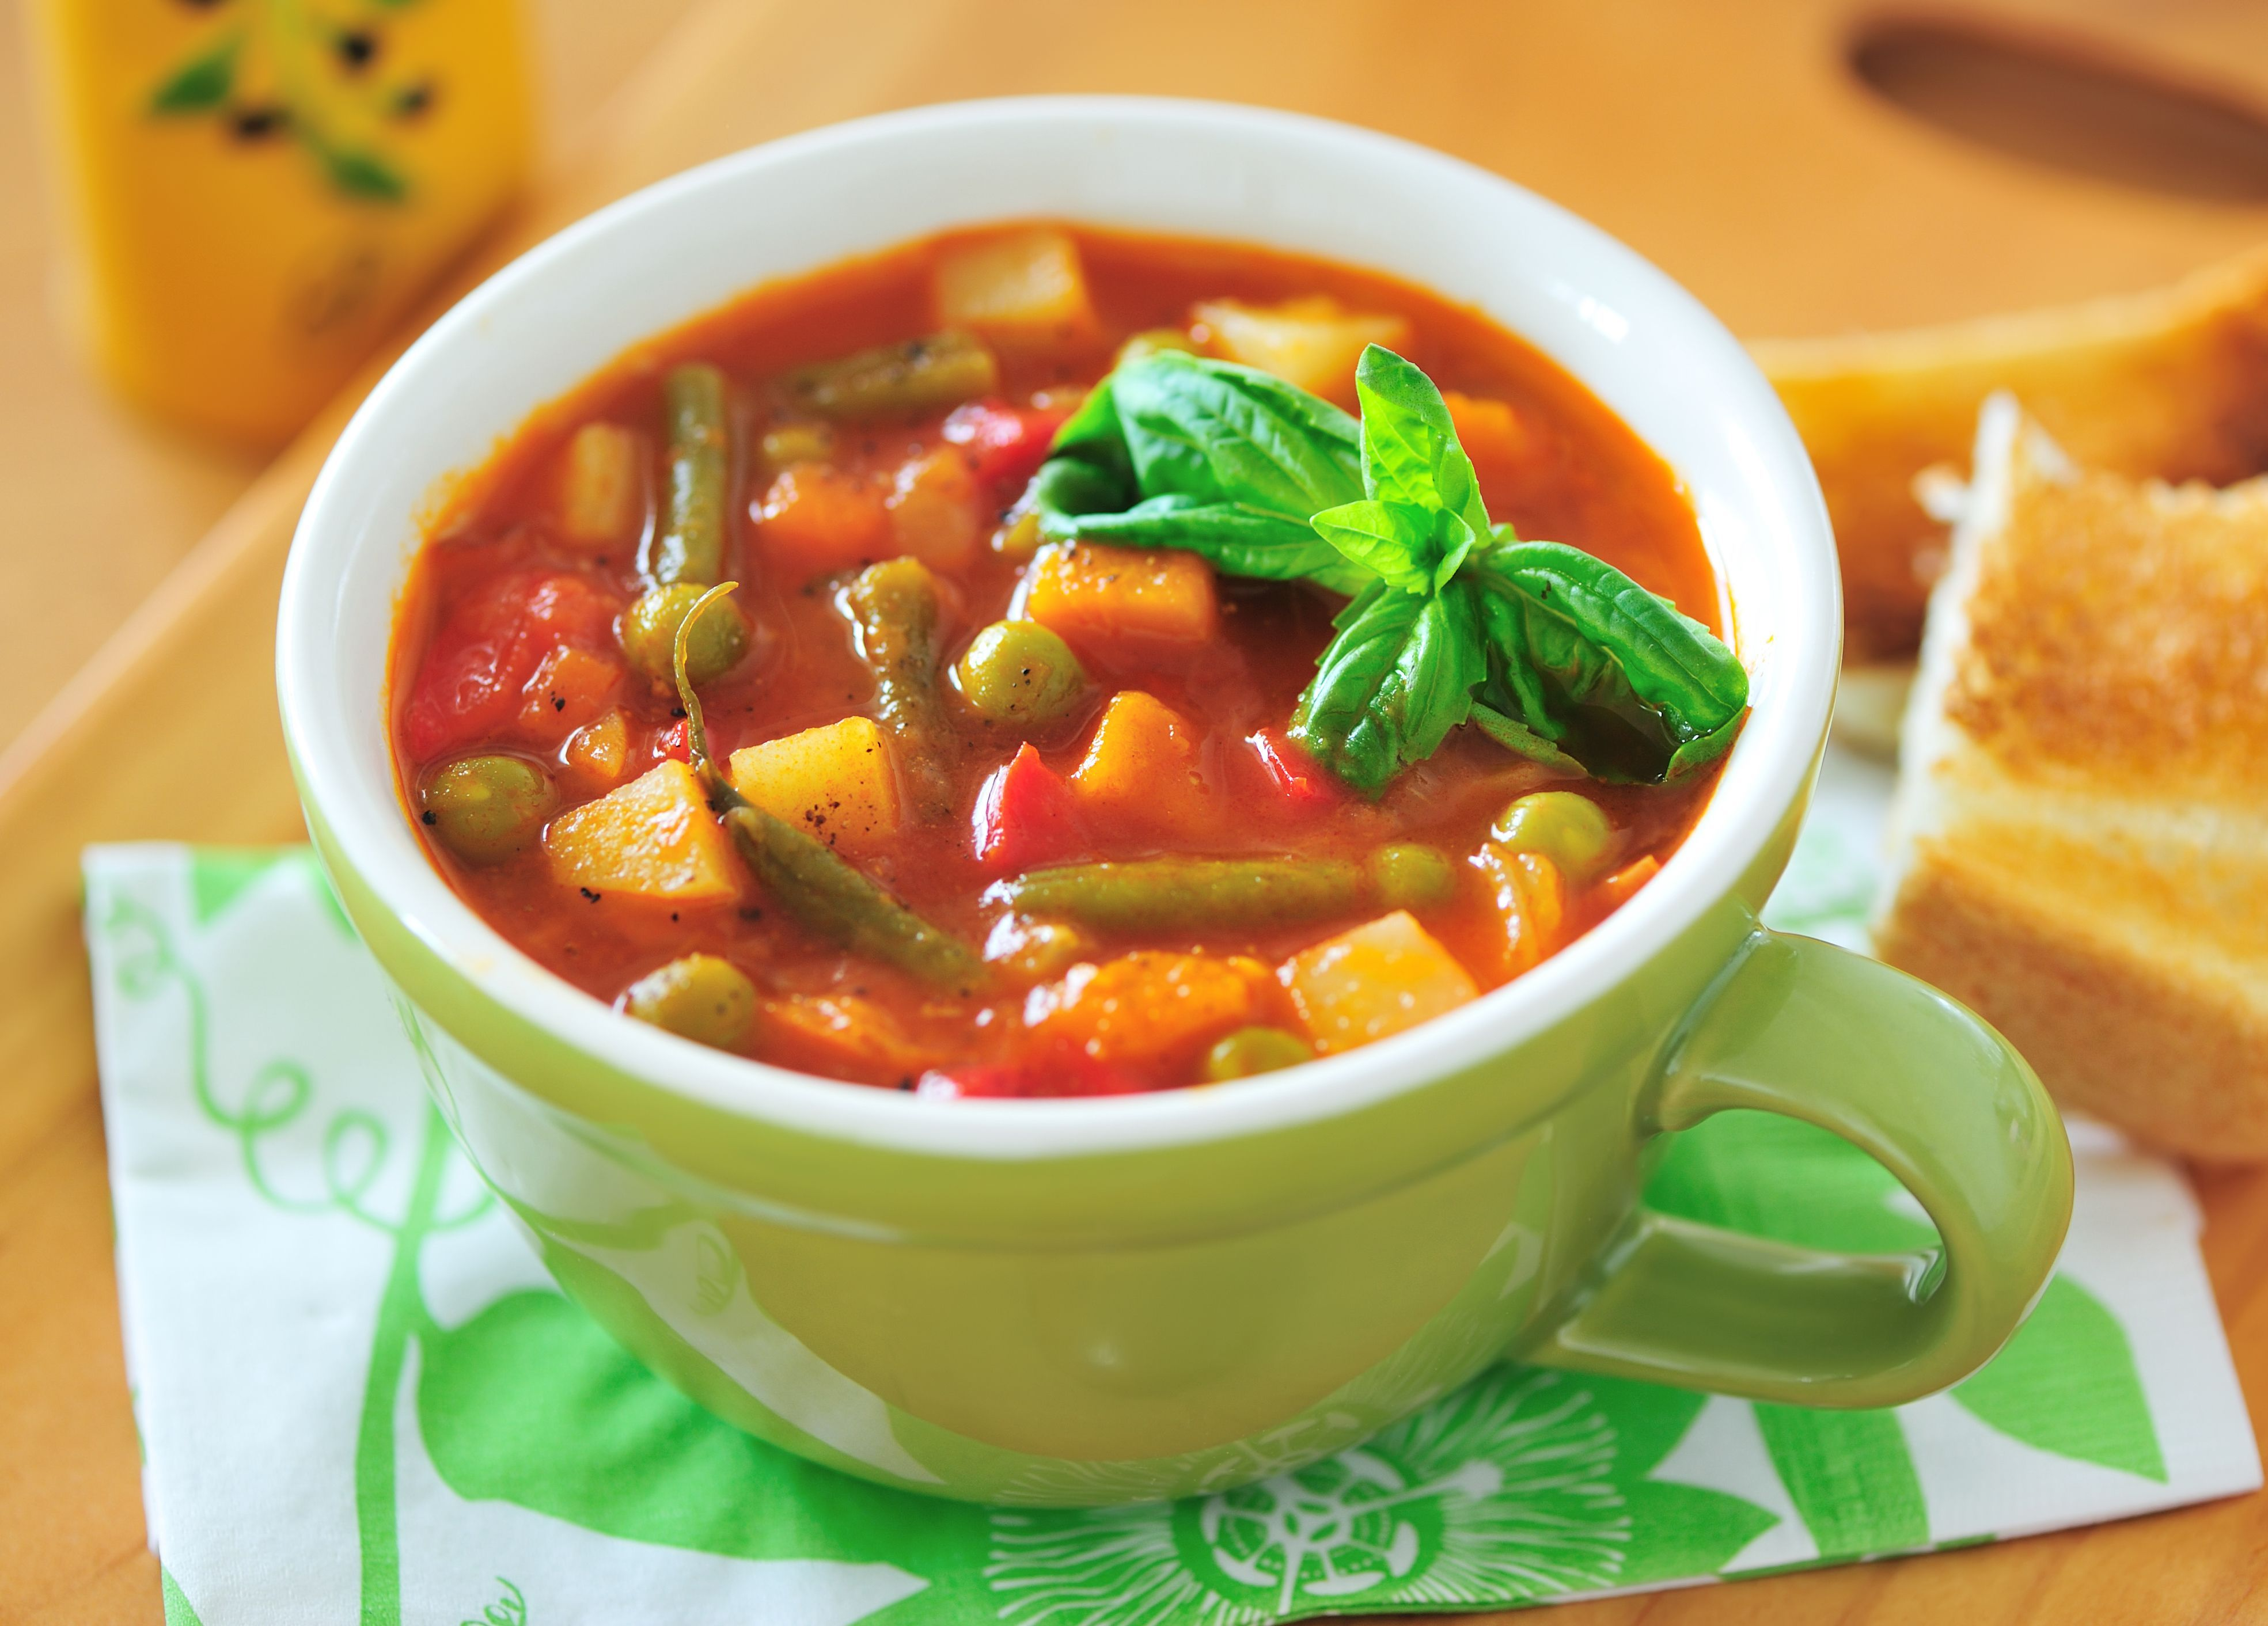 close-up-of-a-cup-of-minestrone-soup-170619278-588b932a5f9b5874ee58ac21